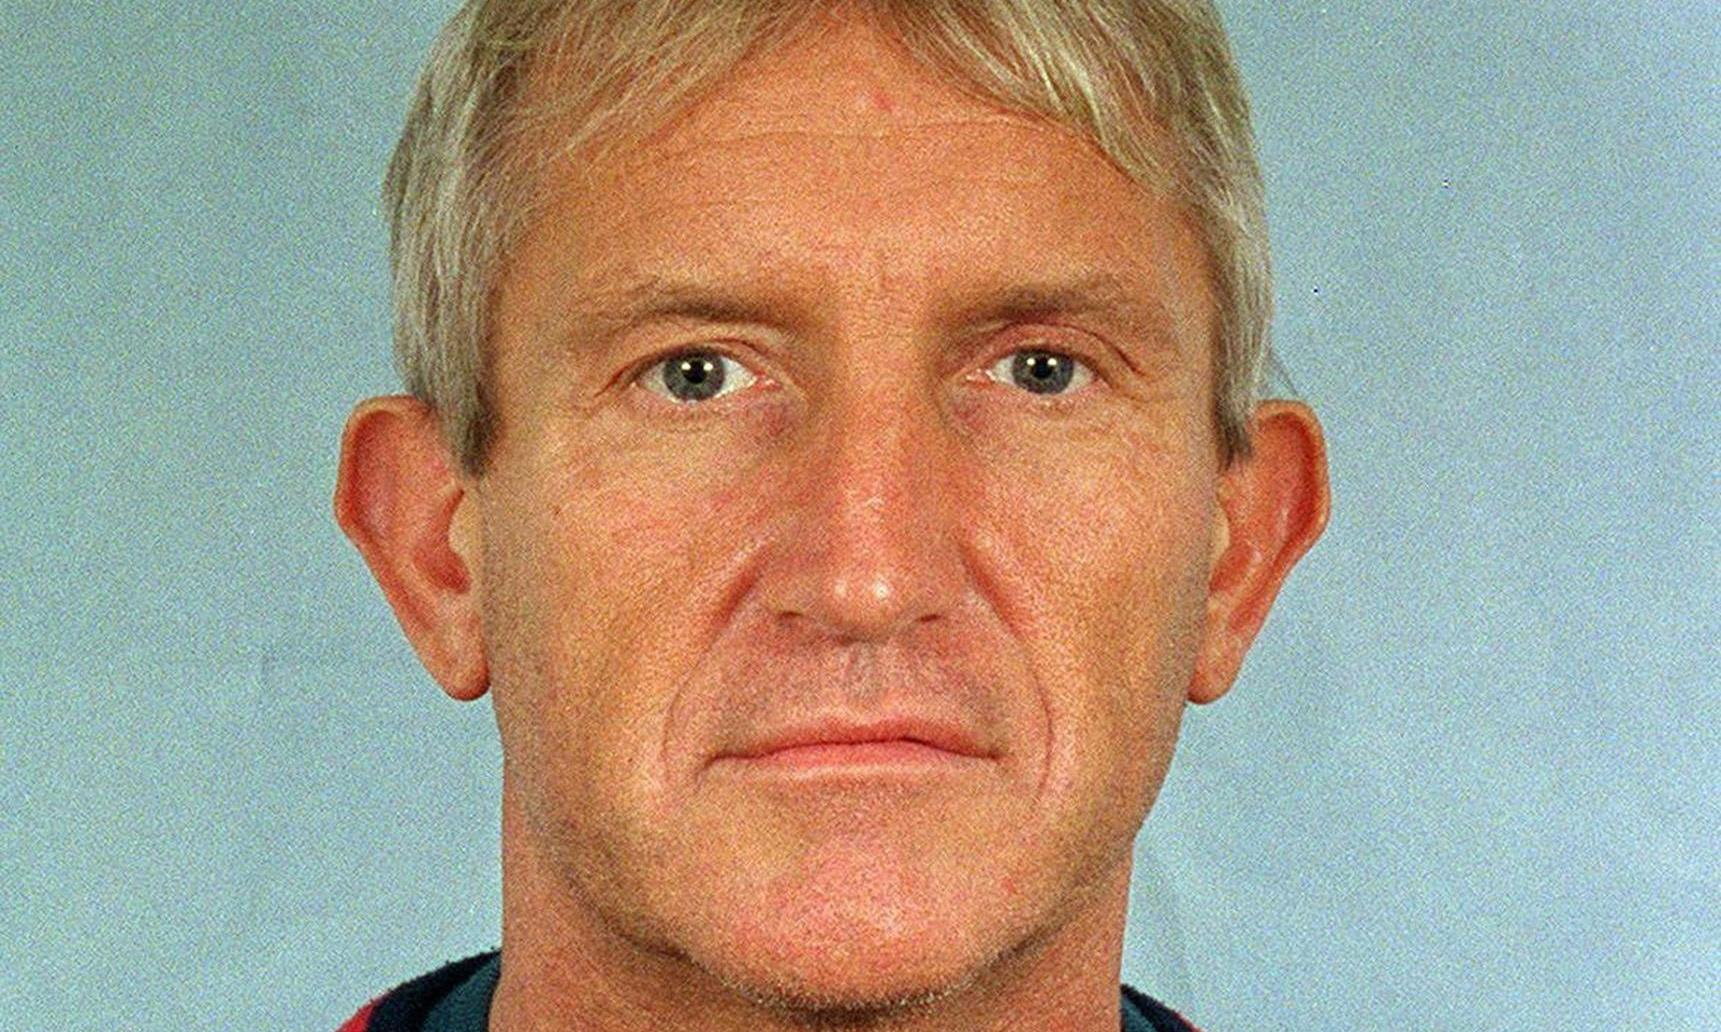 Road-rage killer Kenneth Noye to be released from prison